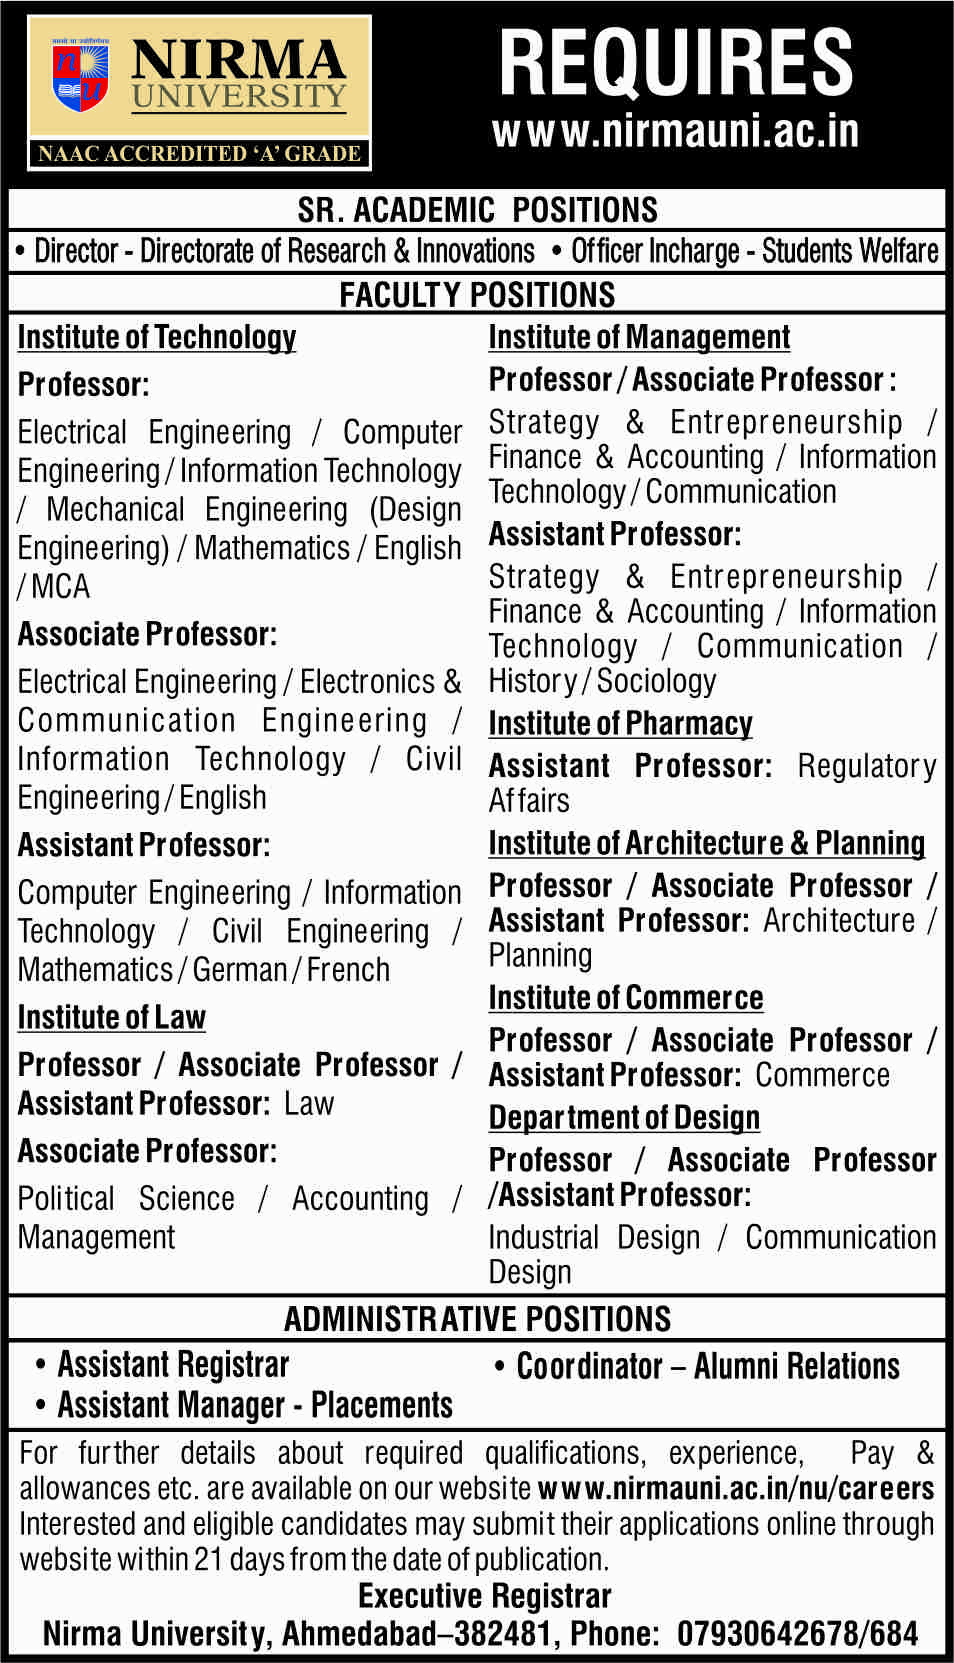 Nirma University hiring faculty posts for its various departments